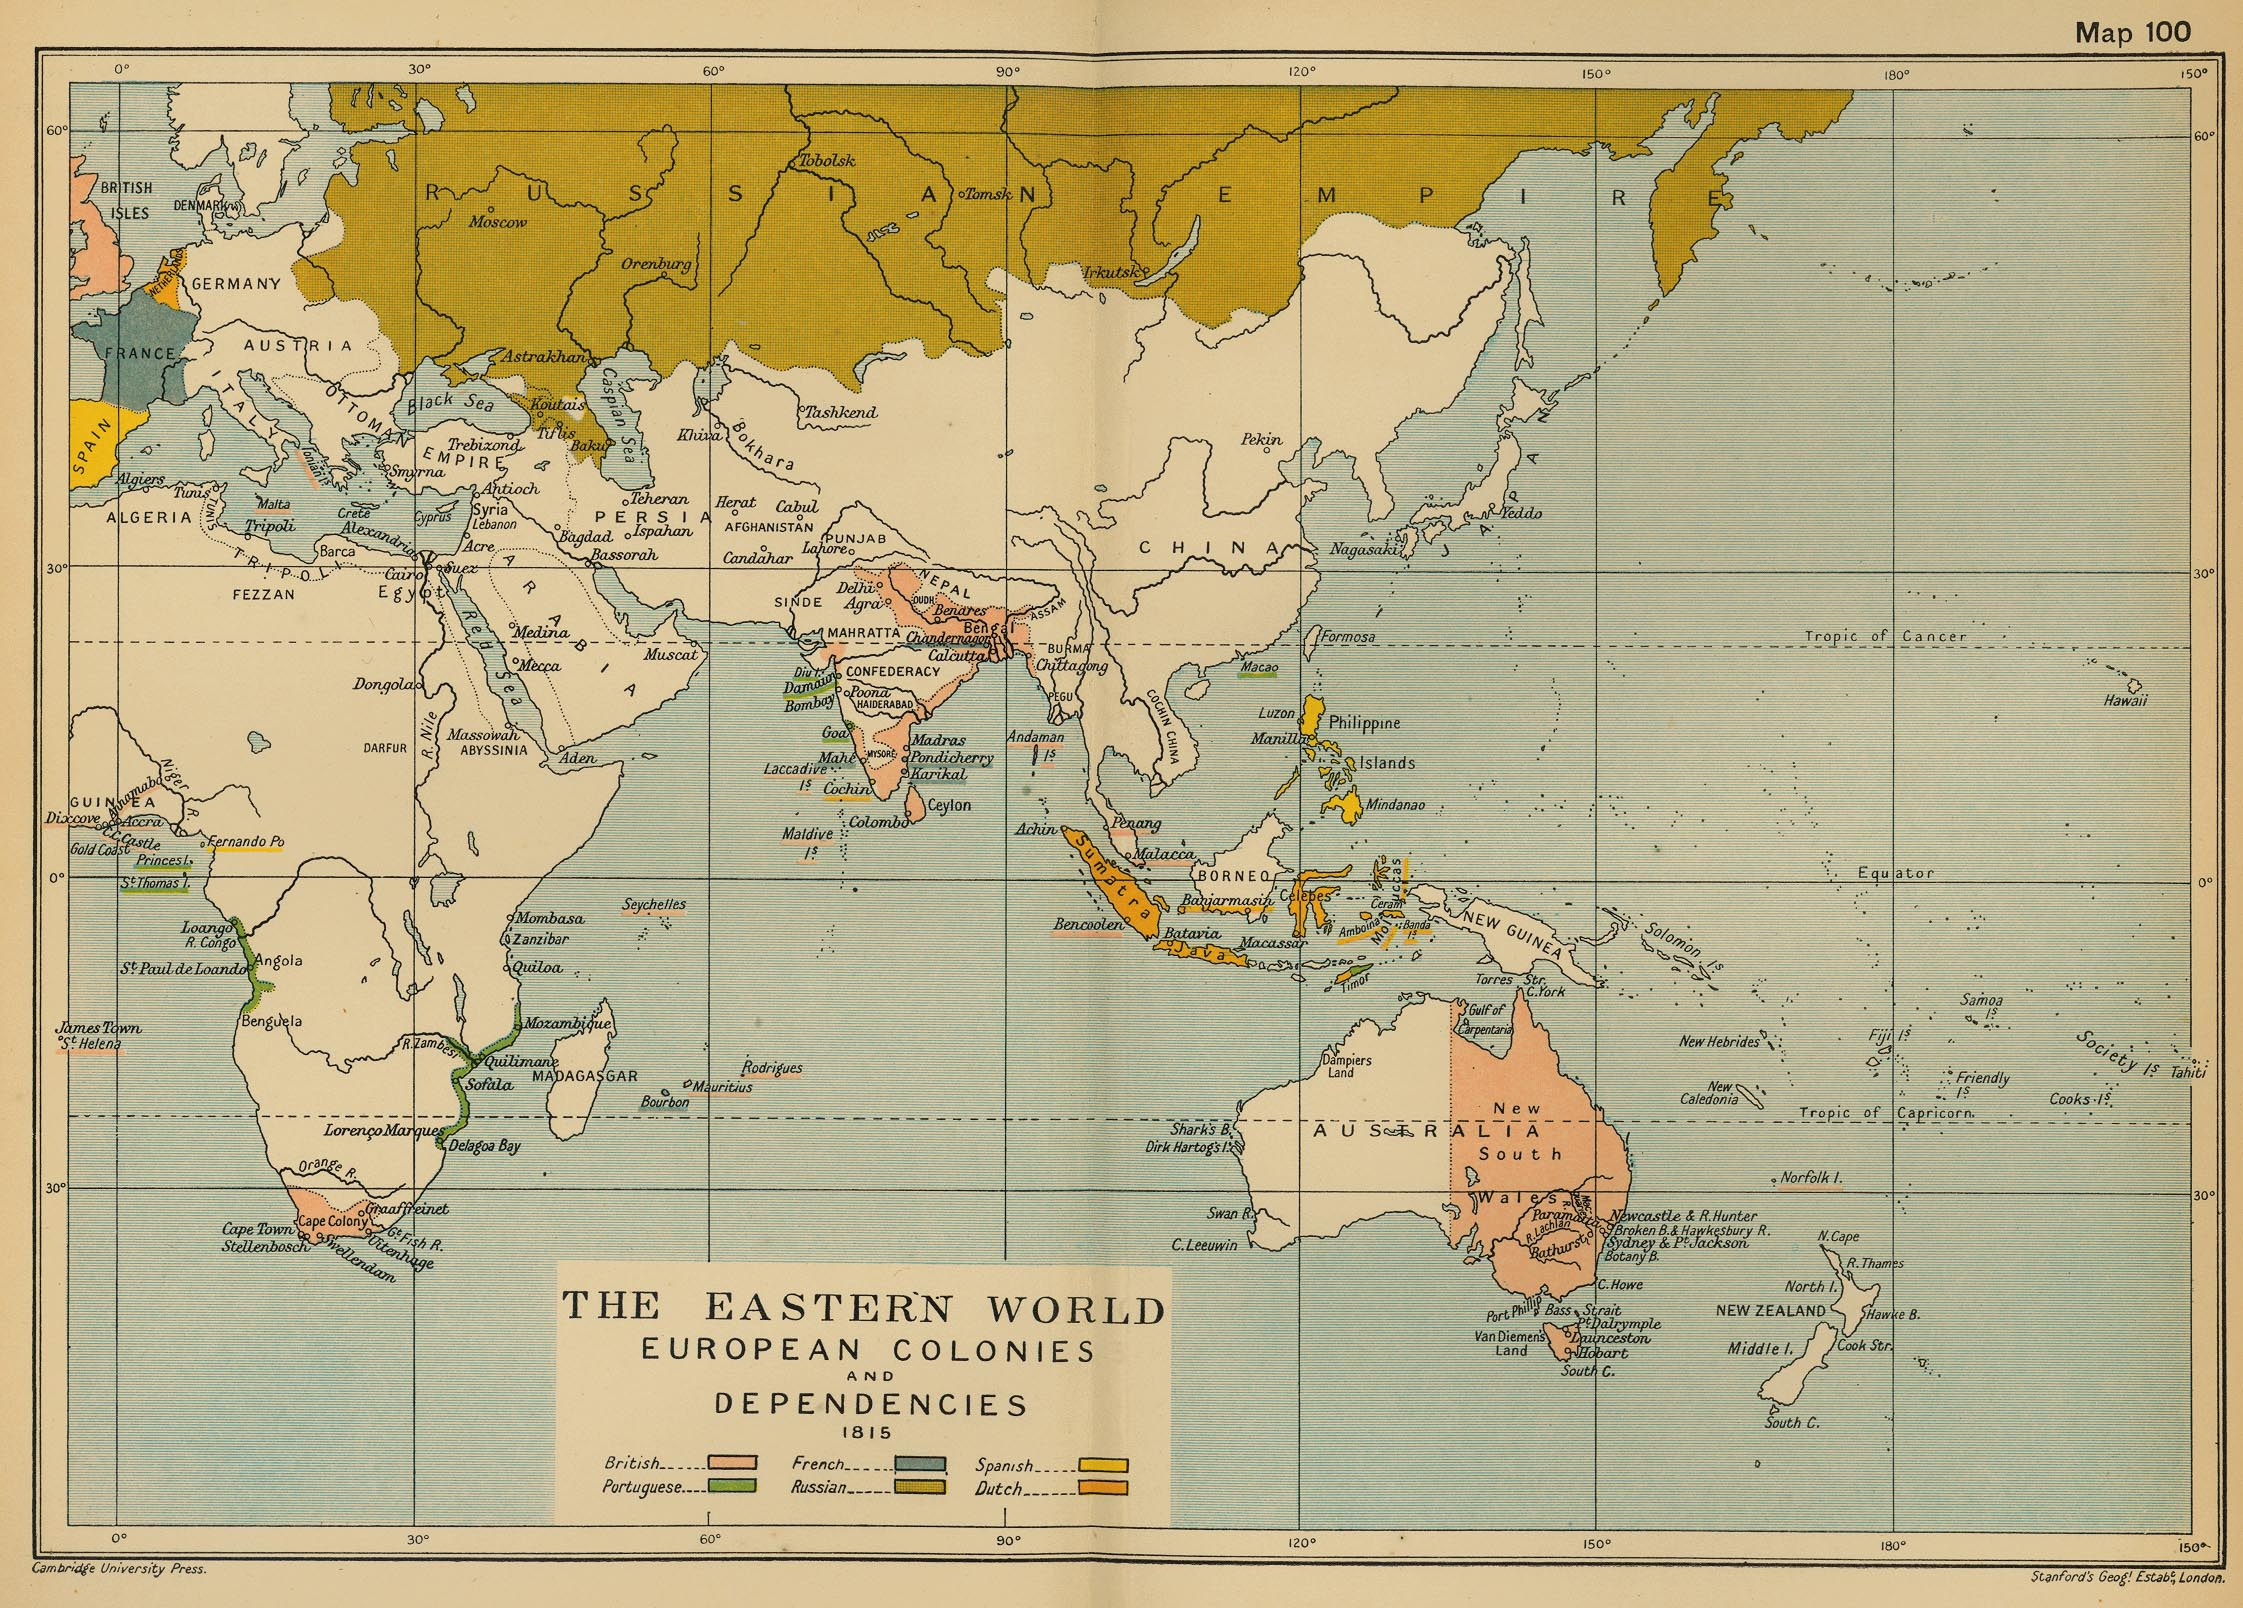 Map of the Eastern World 1815: Colonies and Dependencies